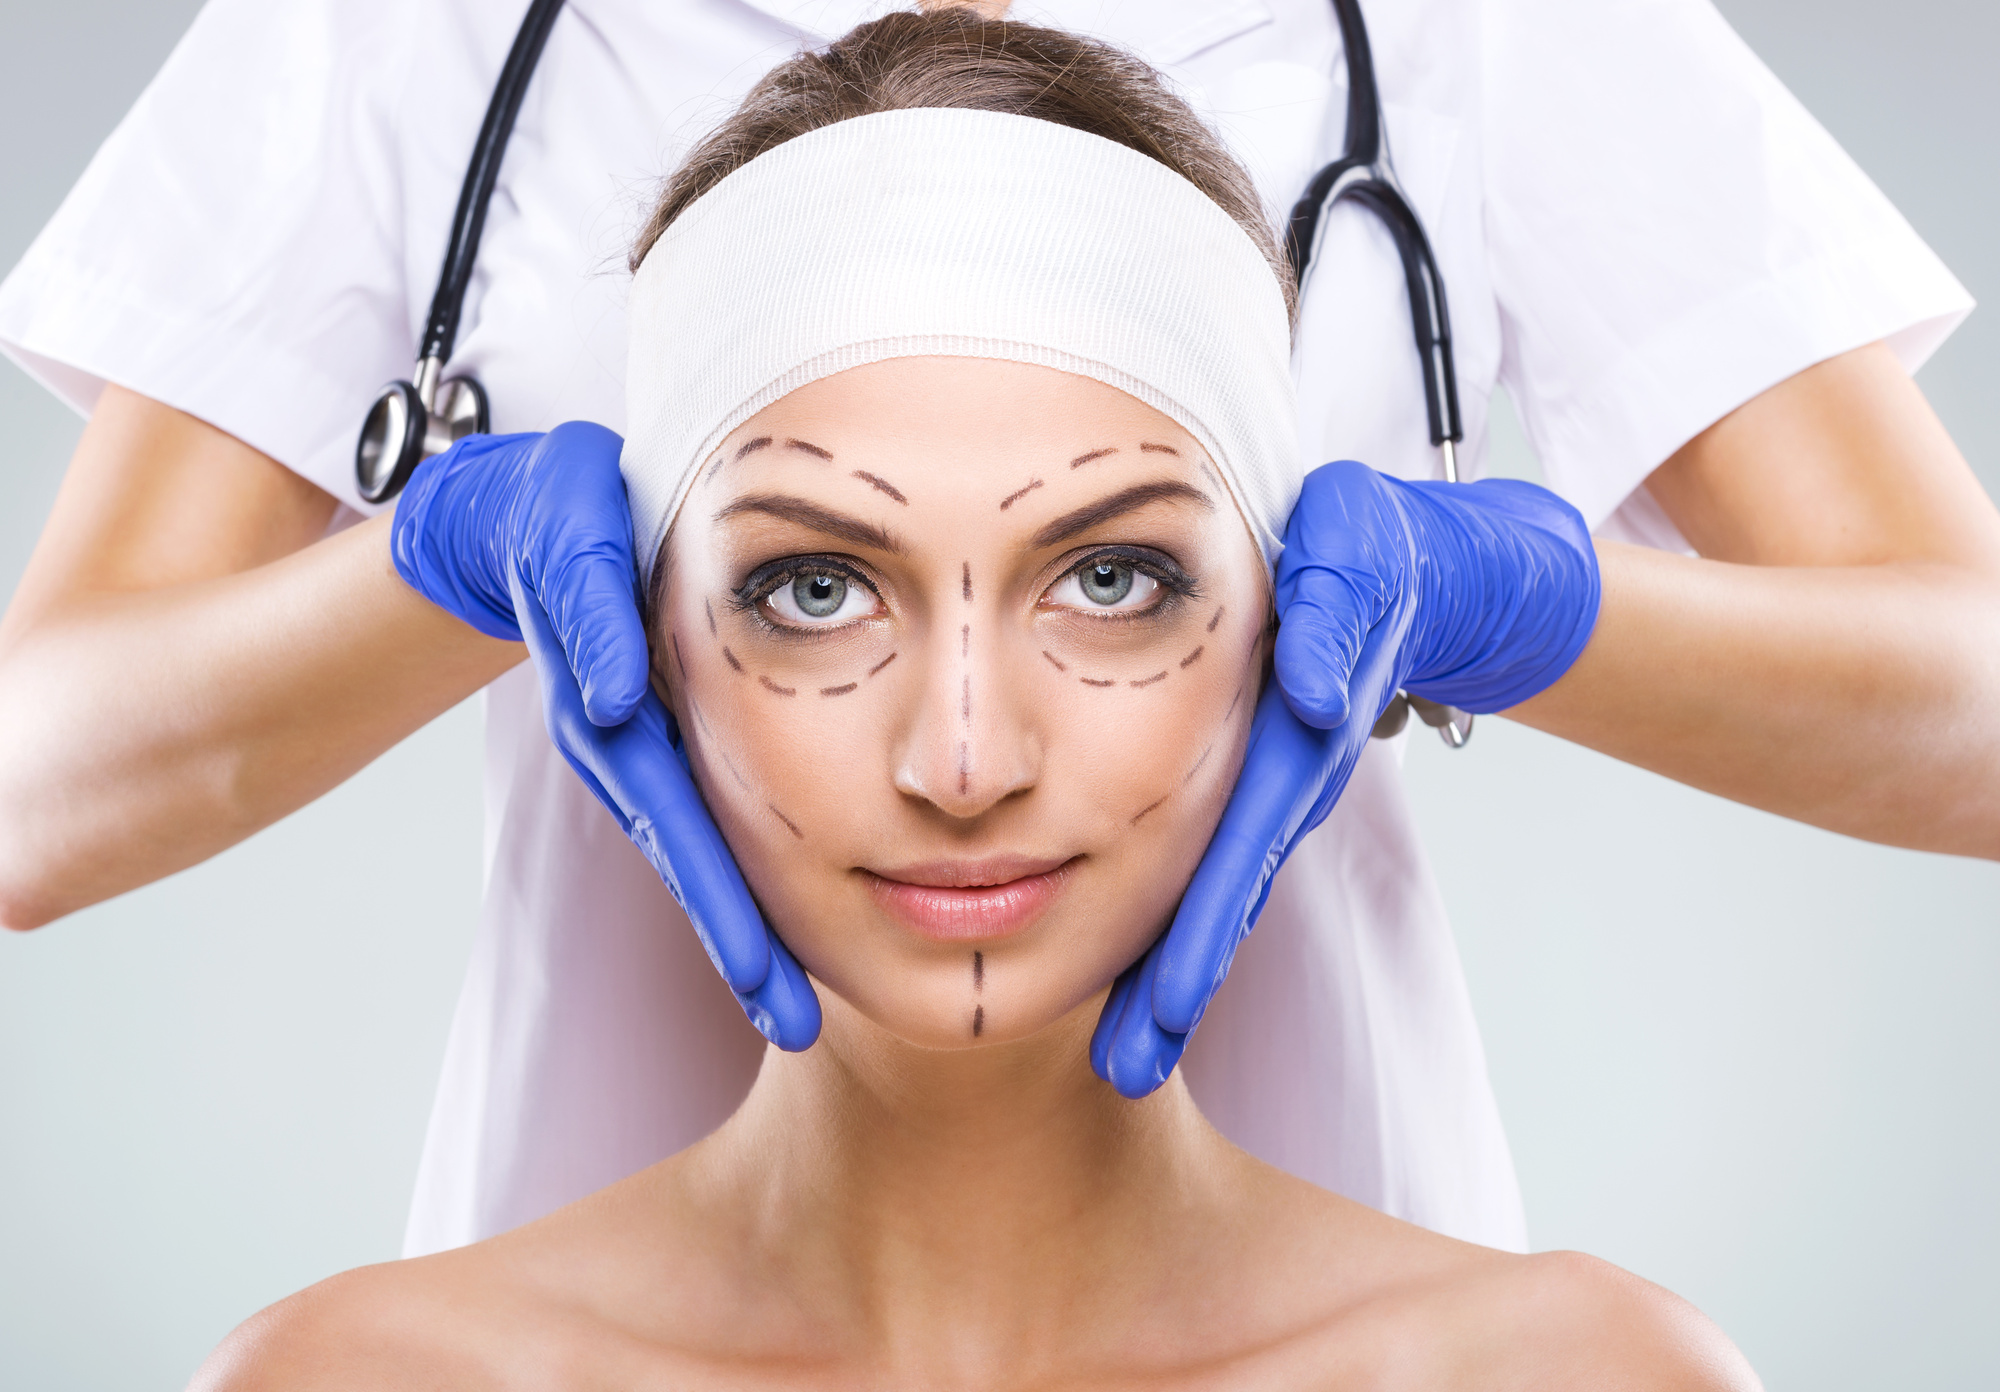 Cosmetic Benefits Why Do People Get Plastic Surgery